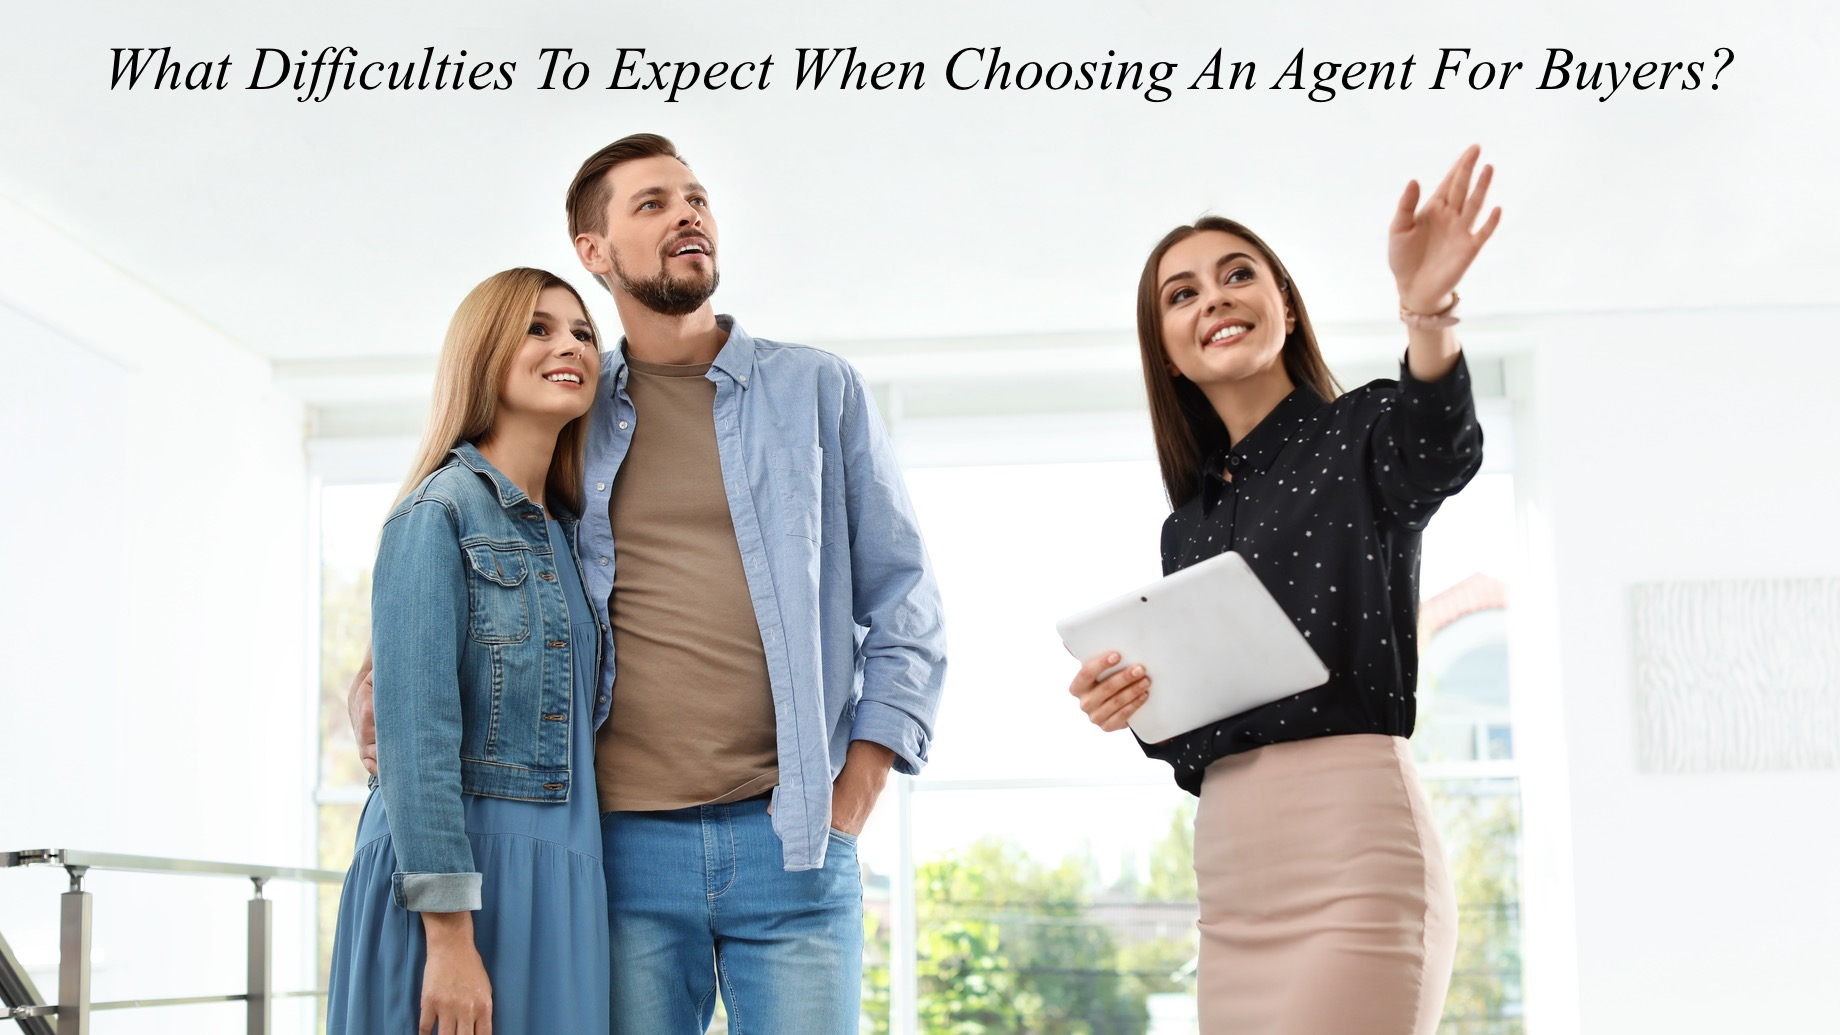 What Difficulties To Expect When Choosing An Agent For Buyers?